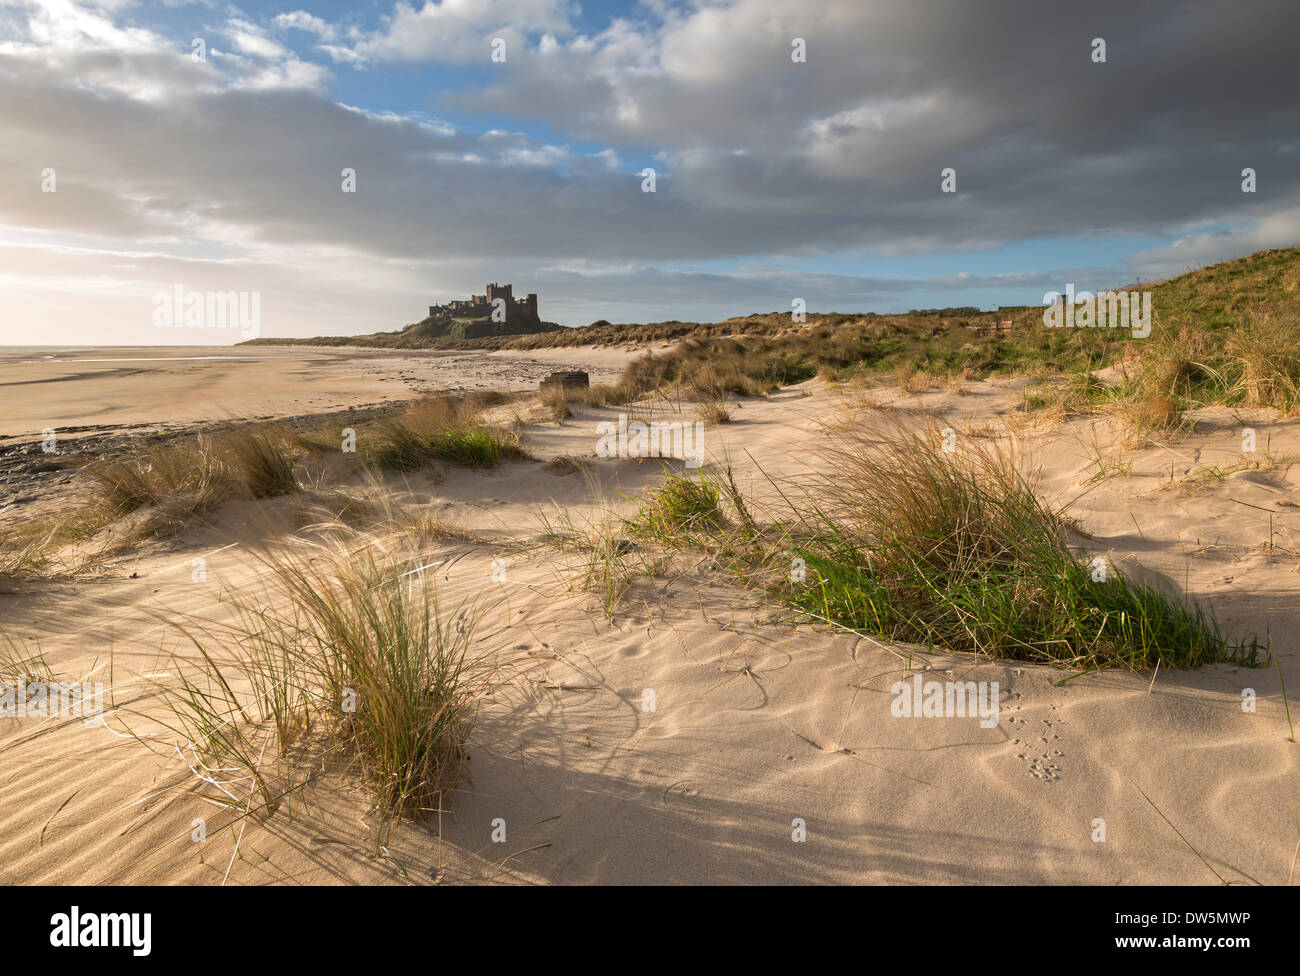 Sand dunes above Bamburgh Beach, with Bamburgh Castle in the background, Northumberland, England. - Stock Image